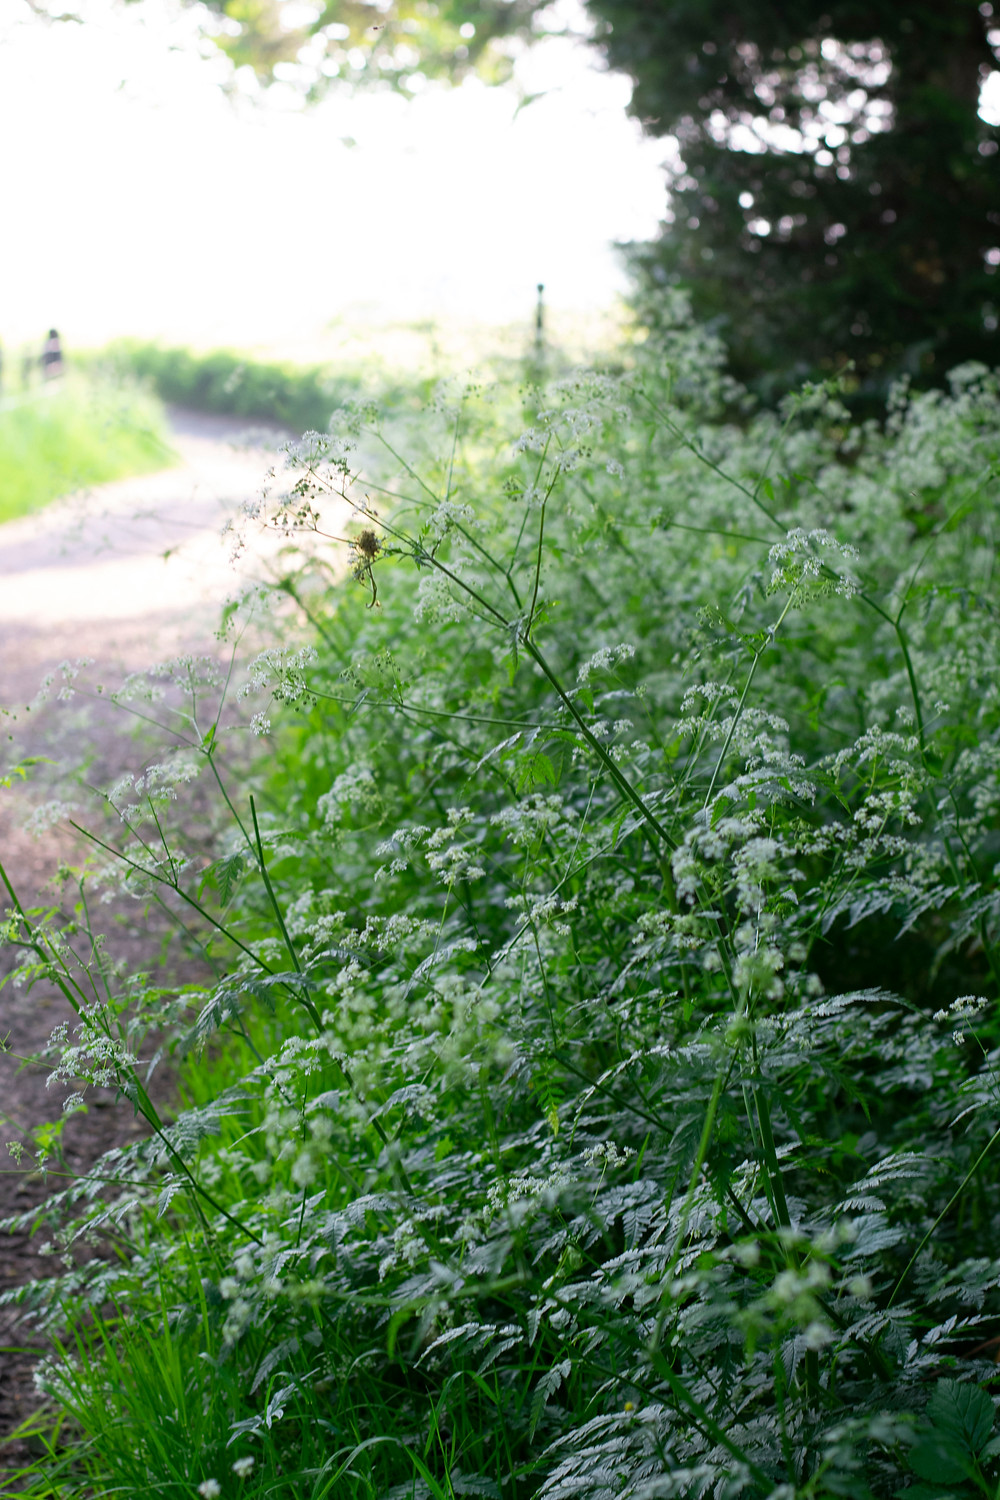 A country lane thick with cow parsley under the shade of trees with sunshine in the background